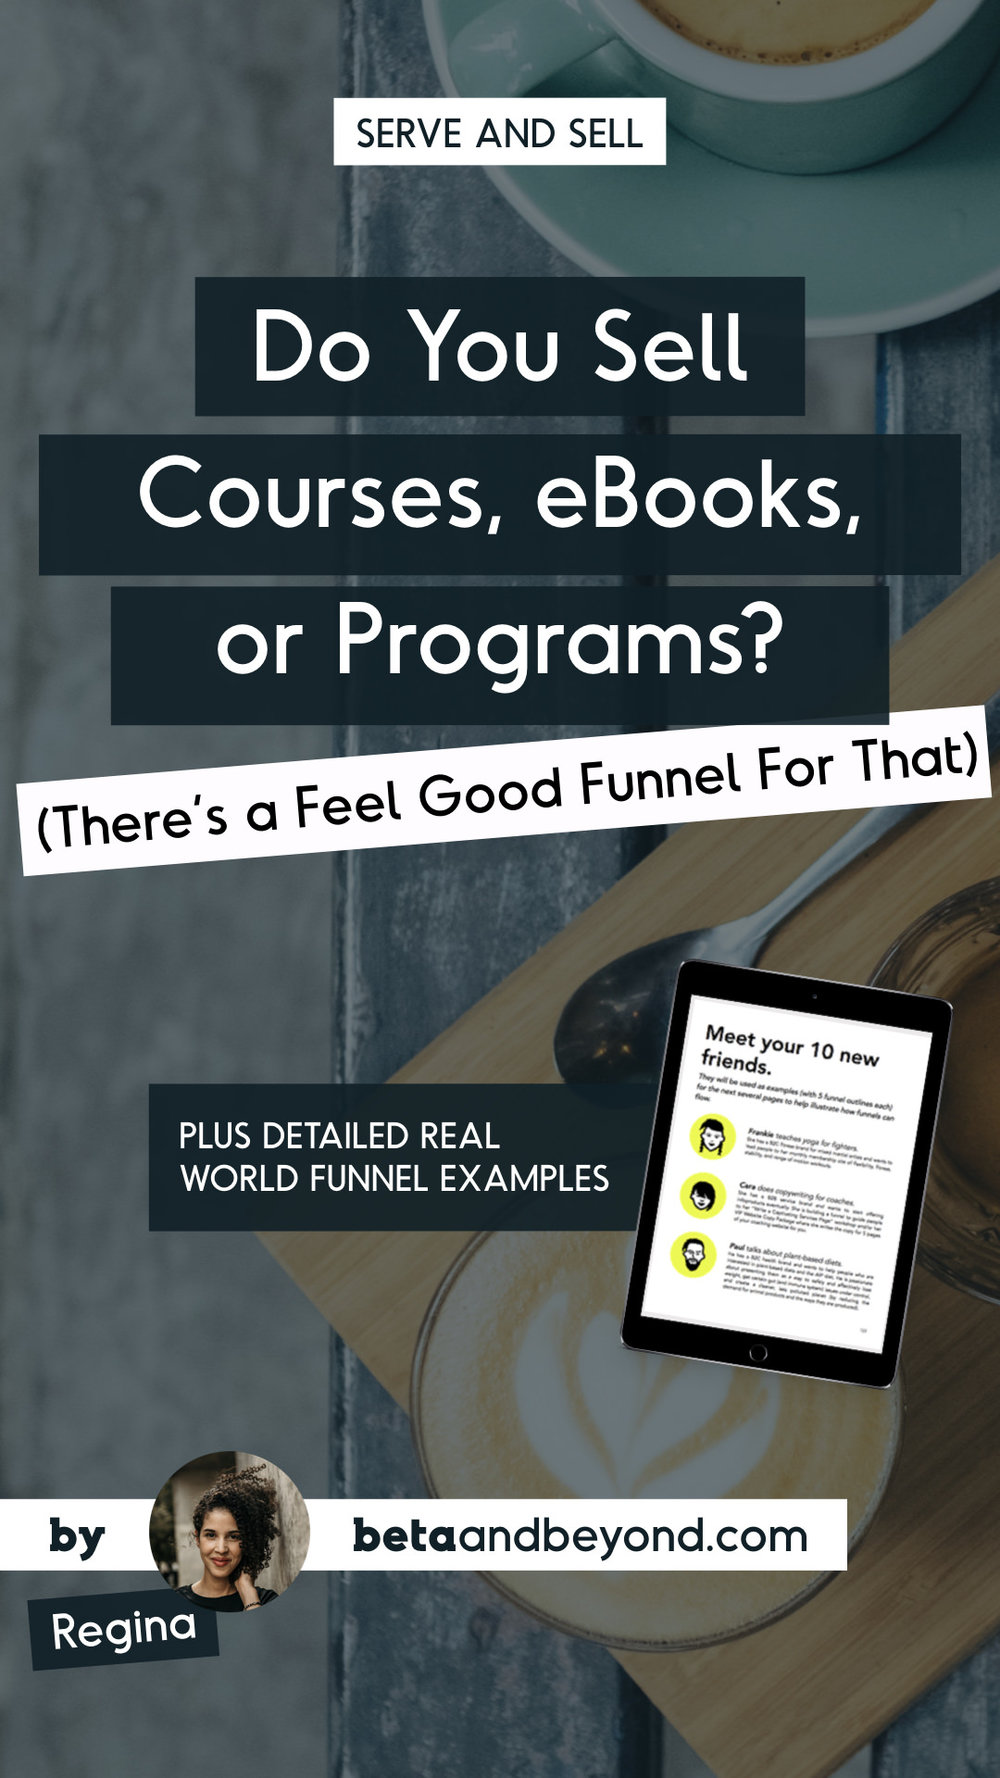 funnels for courses ebooks and programs.jpeg